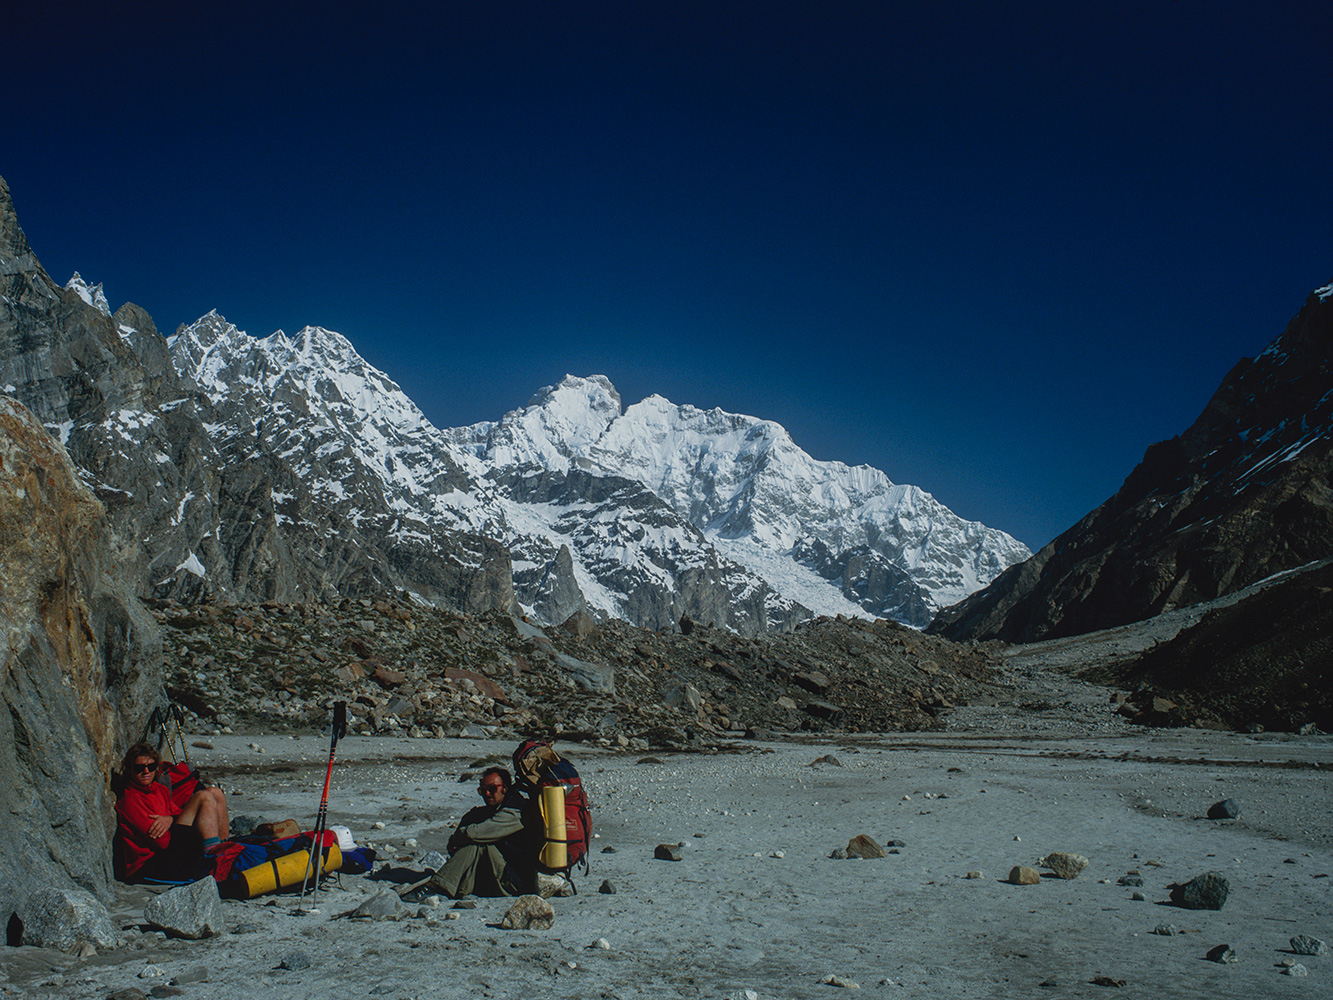 From the summer grazing ground between Saitcho and Dalsan on the Gondokoro glacier above Hushe. Mark Miller and Anwar Ali resting en route to Gondoro Peak BC.